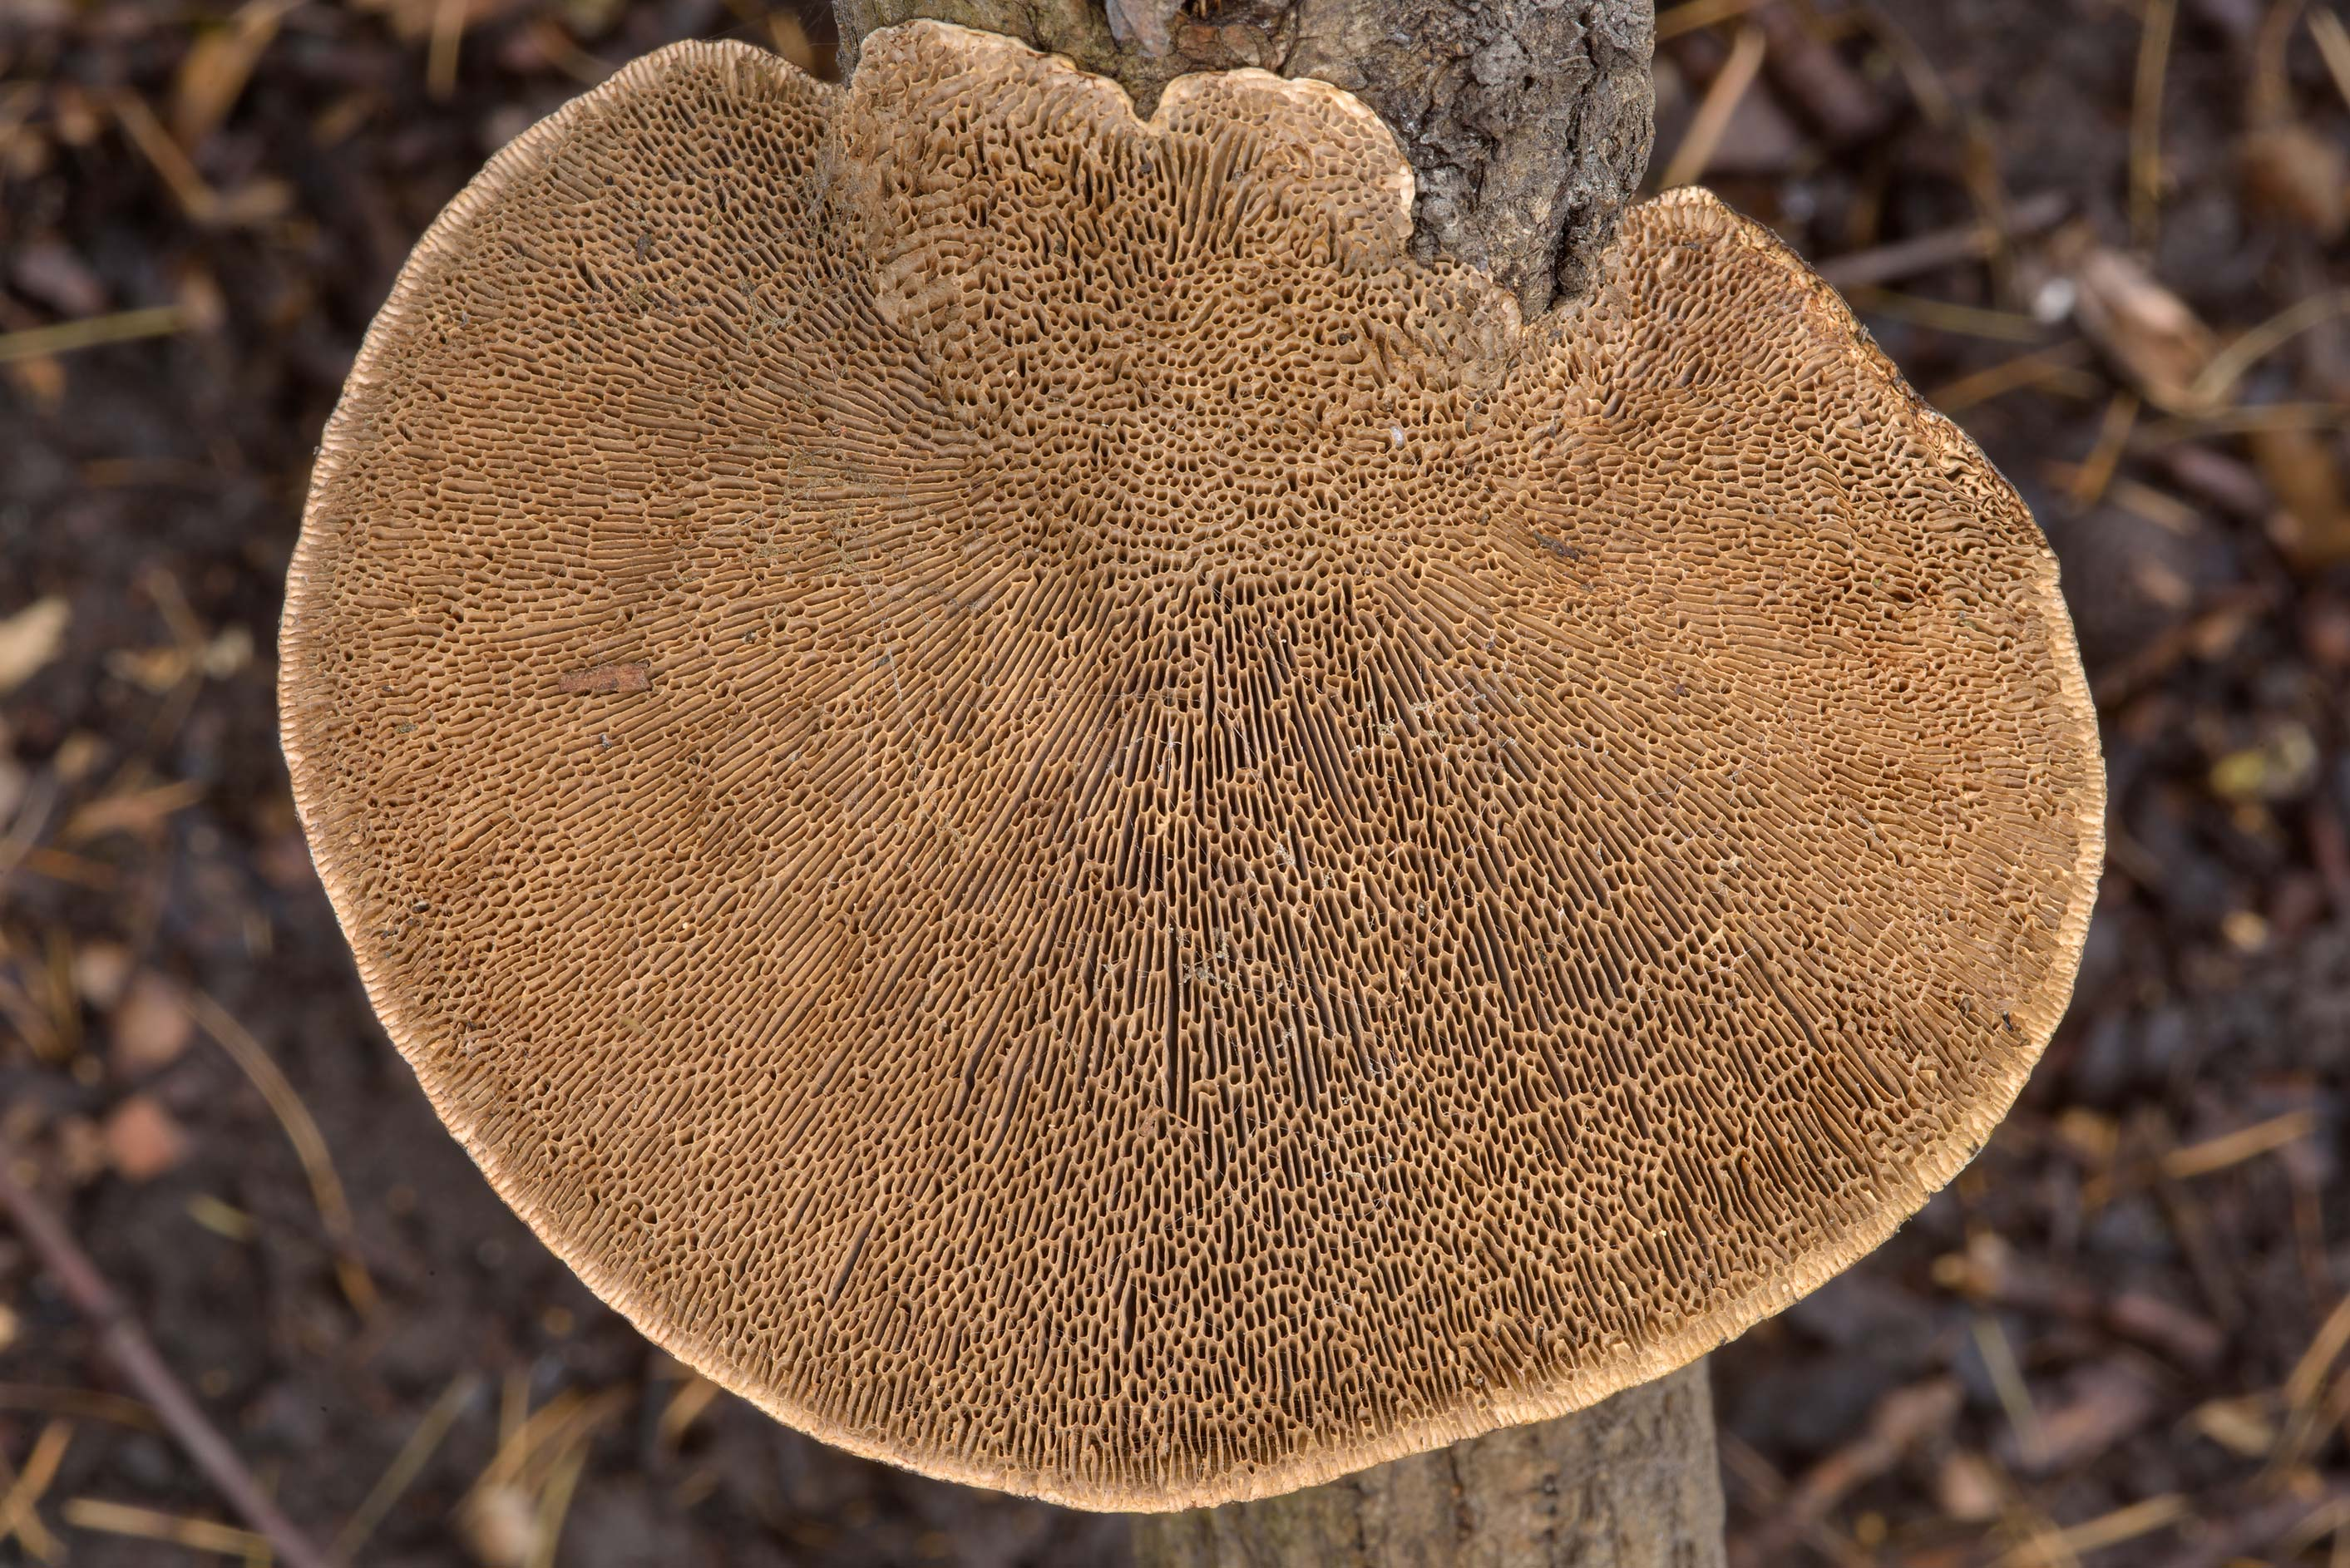 Gills of thin-walled maze polypore mushroom...Institute. St.Petersburg, Russia